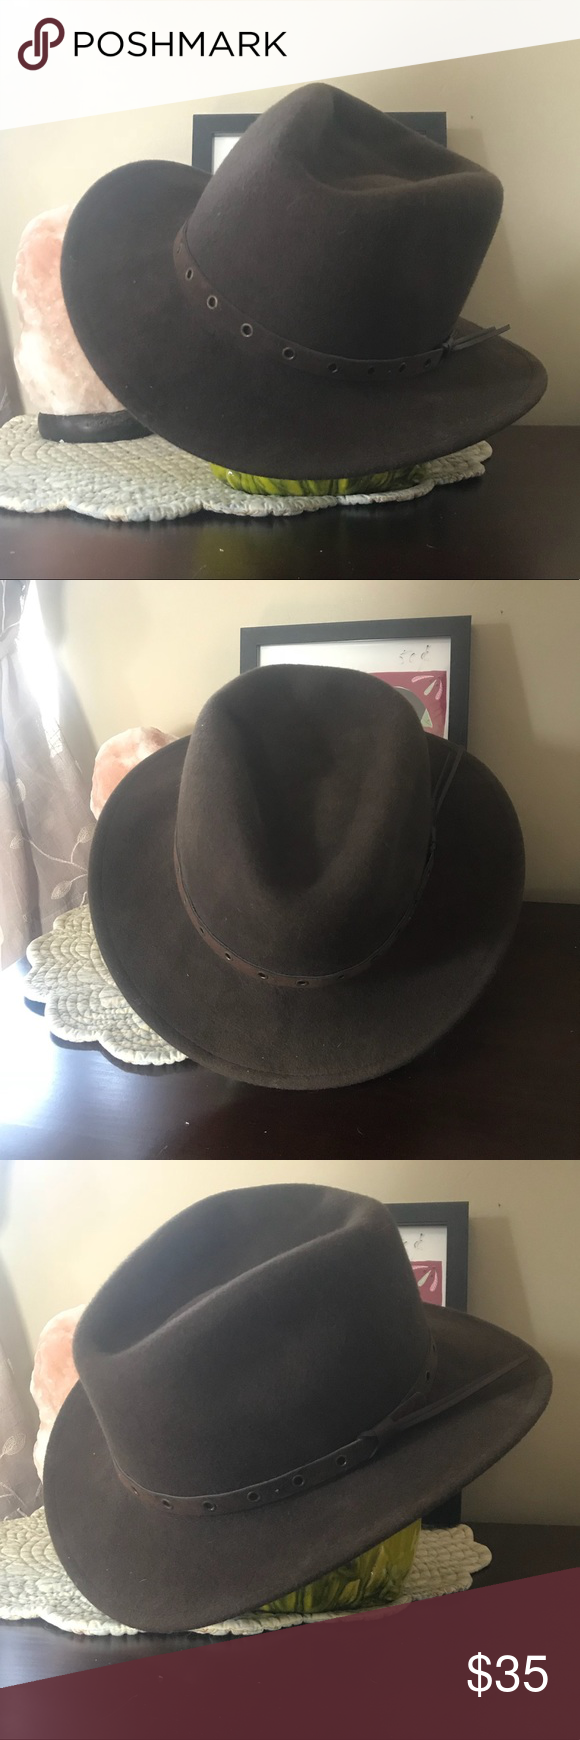 🦅🏍Harley-Davidson 100% Wool hat Excellent condition. Hard to come by. Chocolate brown color. Size states large, but I'm unsure if this is a woman's or a man's hat. It fits my head great but I've got a big noggin! Harley-Davidson Other